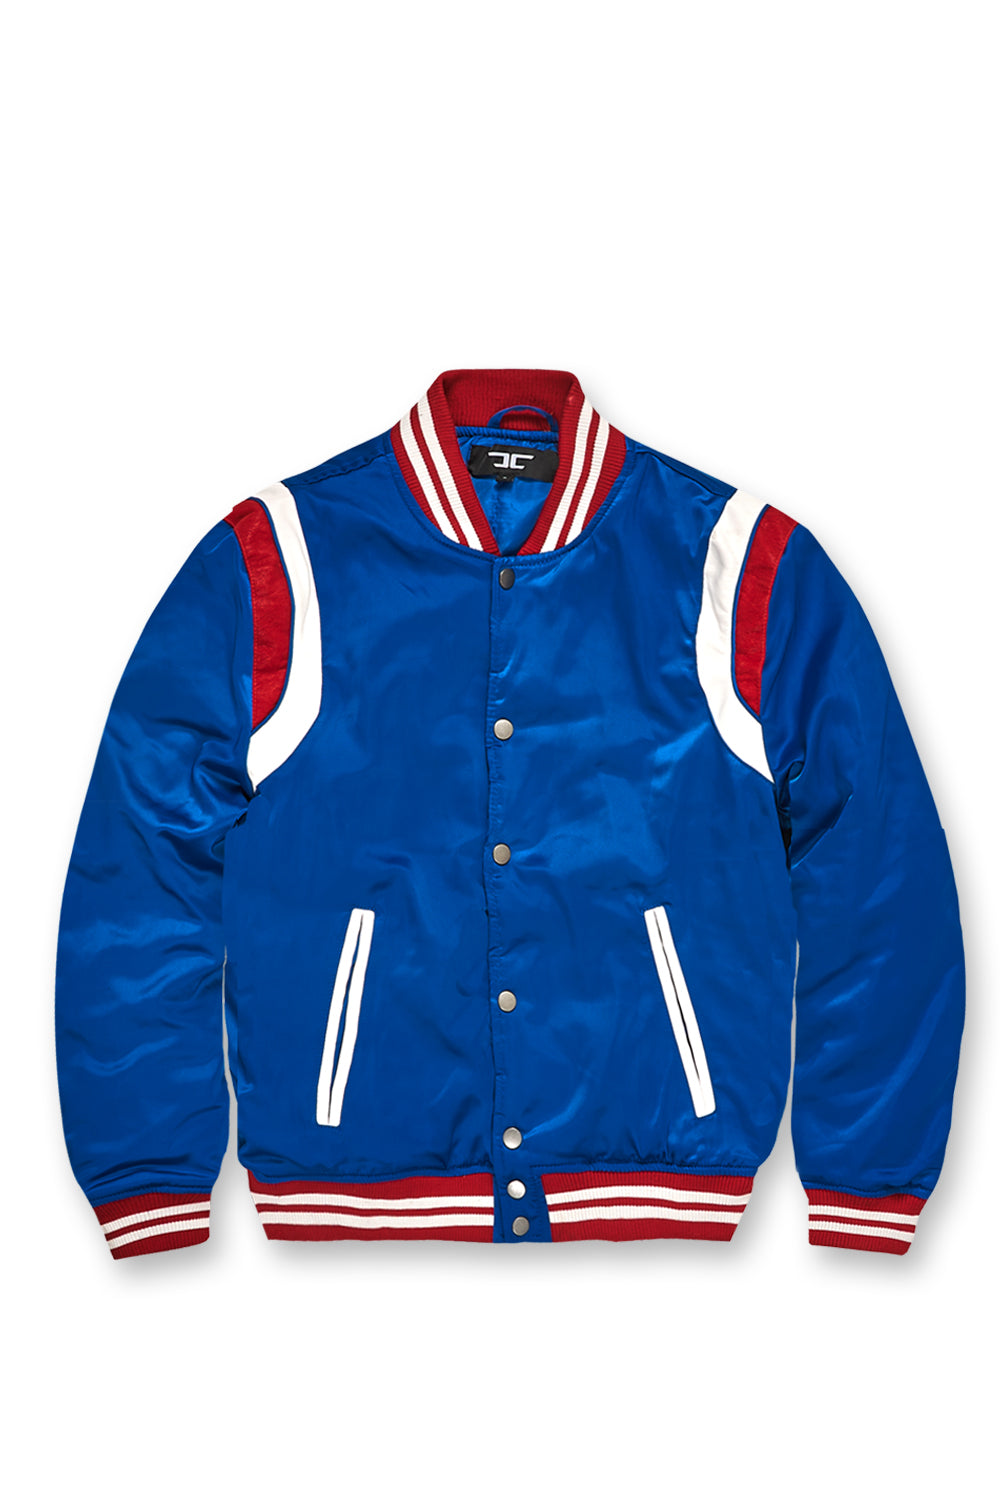 Jordan Craig - Geneva Satin Varsity Jacket (Royal)